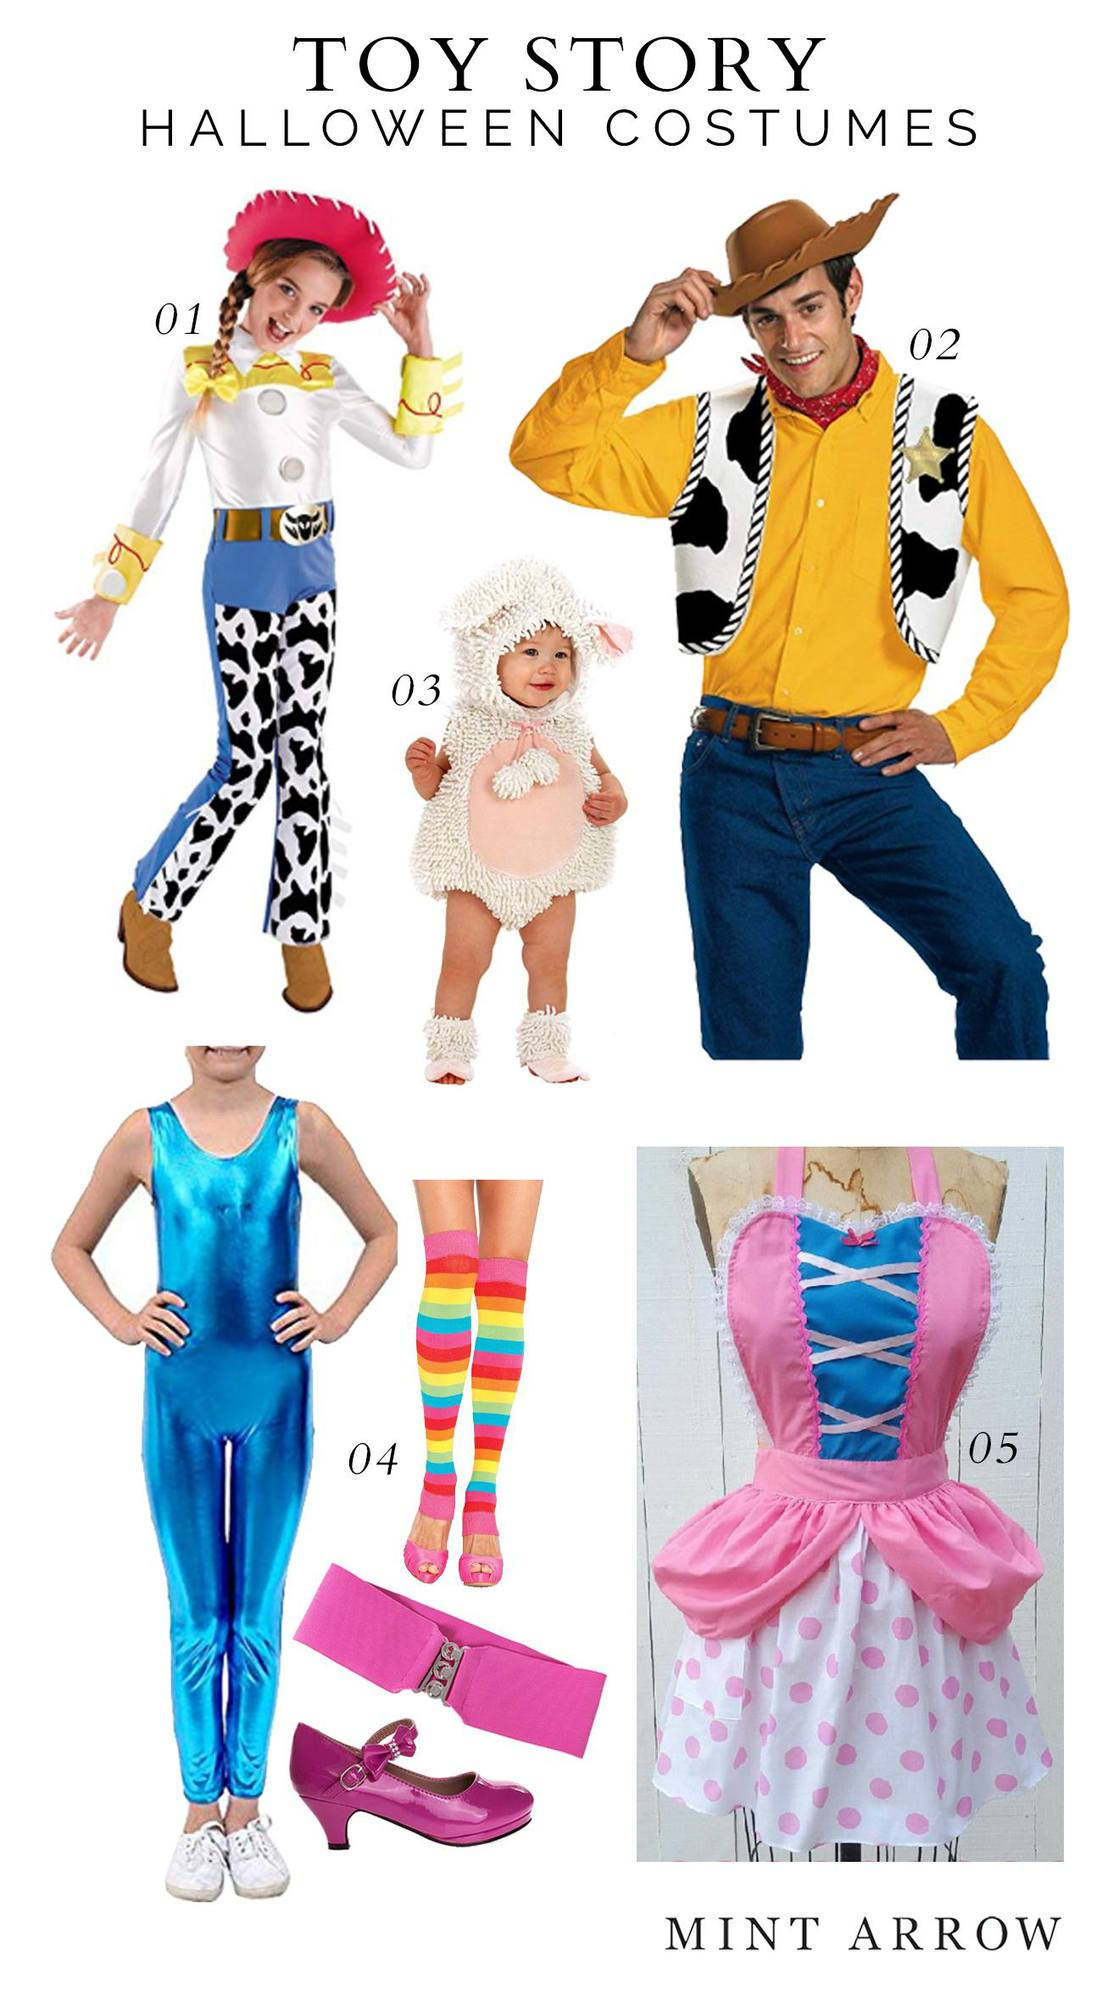 tory story family costume